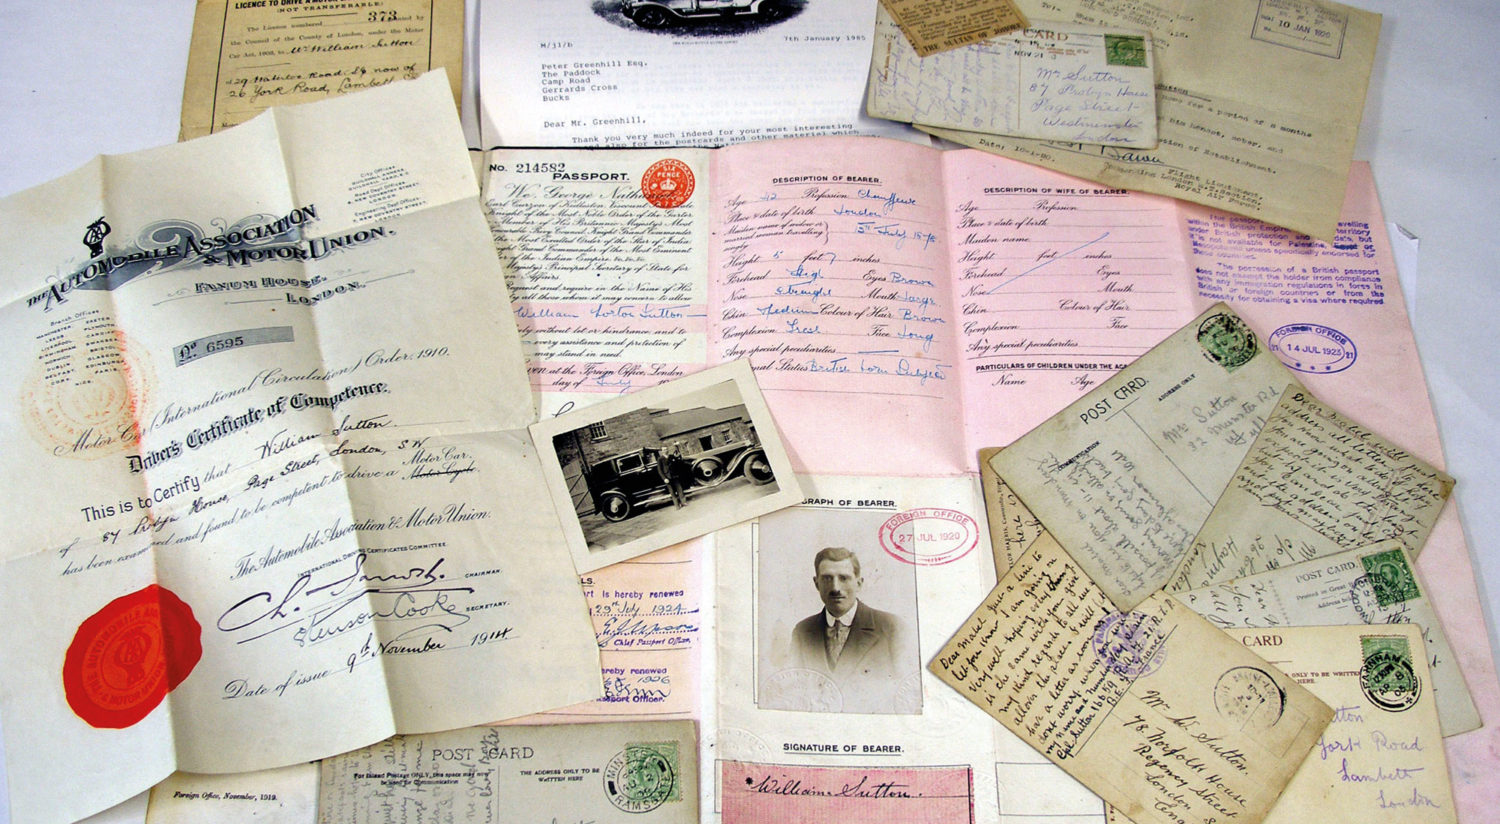 A Certificate of Driving Competence, old photographs, postcards and other documents